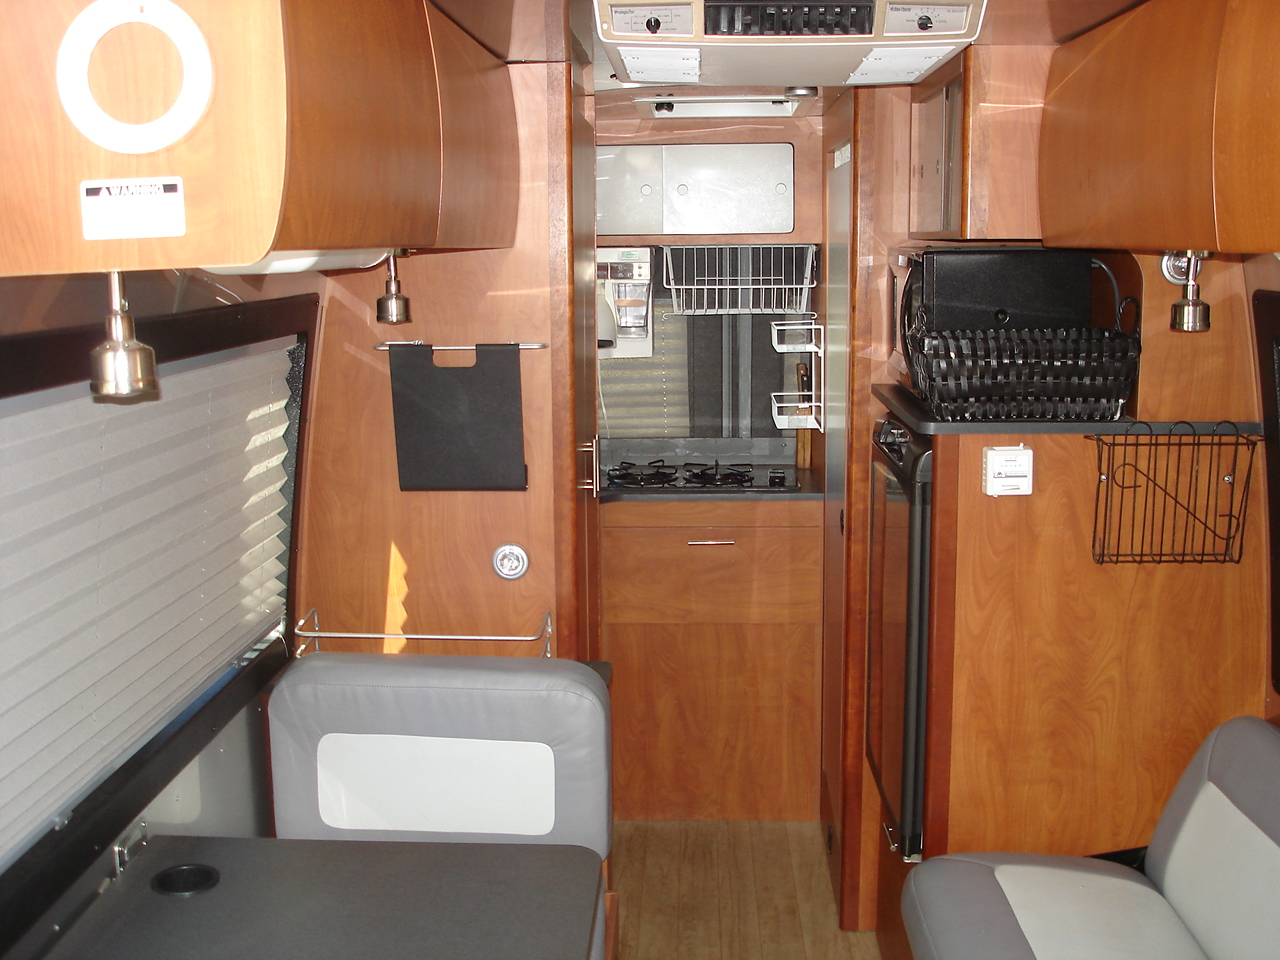 Click image for larger version  Name:Airstream Sprinter Motorhome 002.jpg Views:40 Size:542.0 KB ID:217959